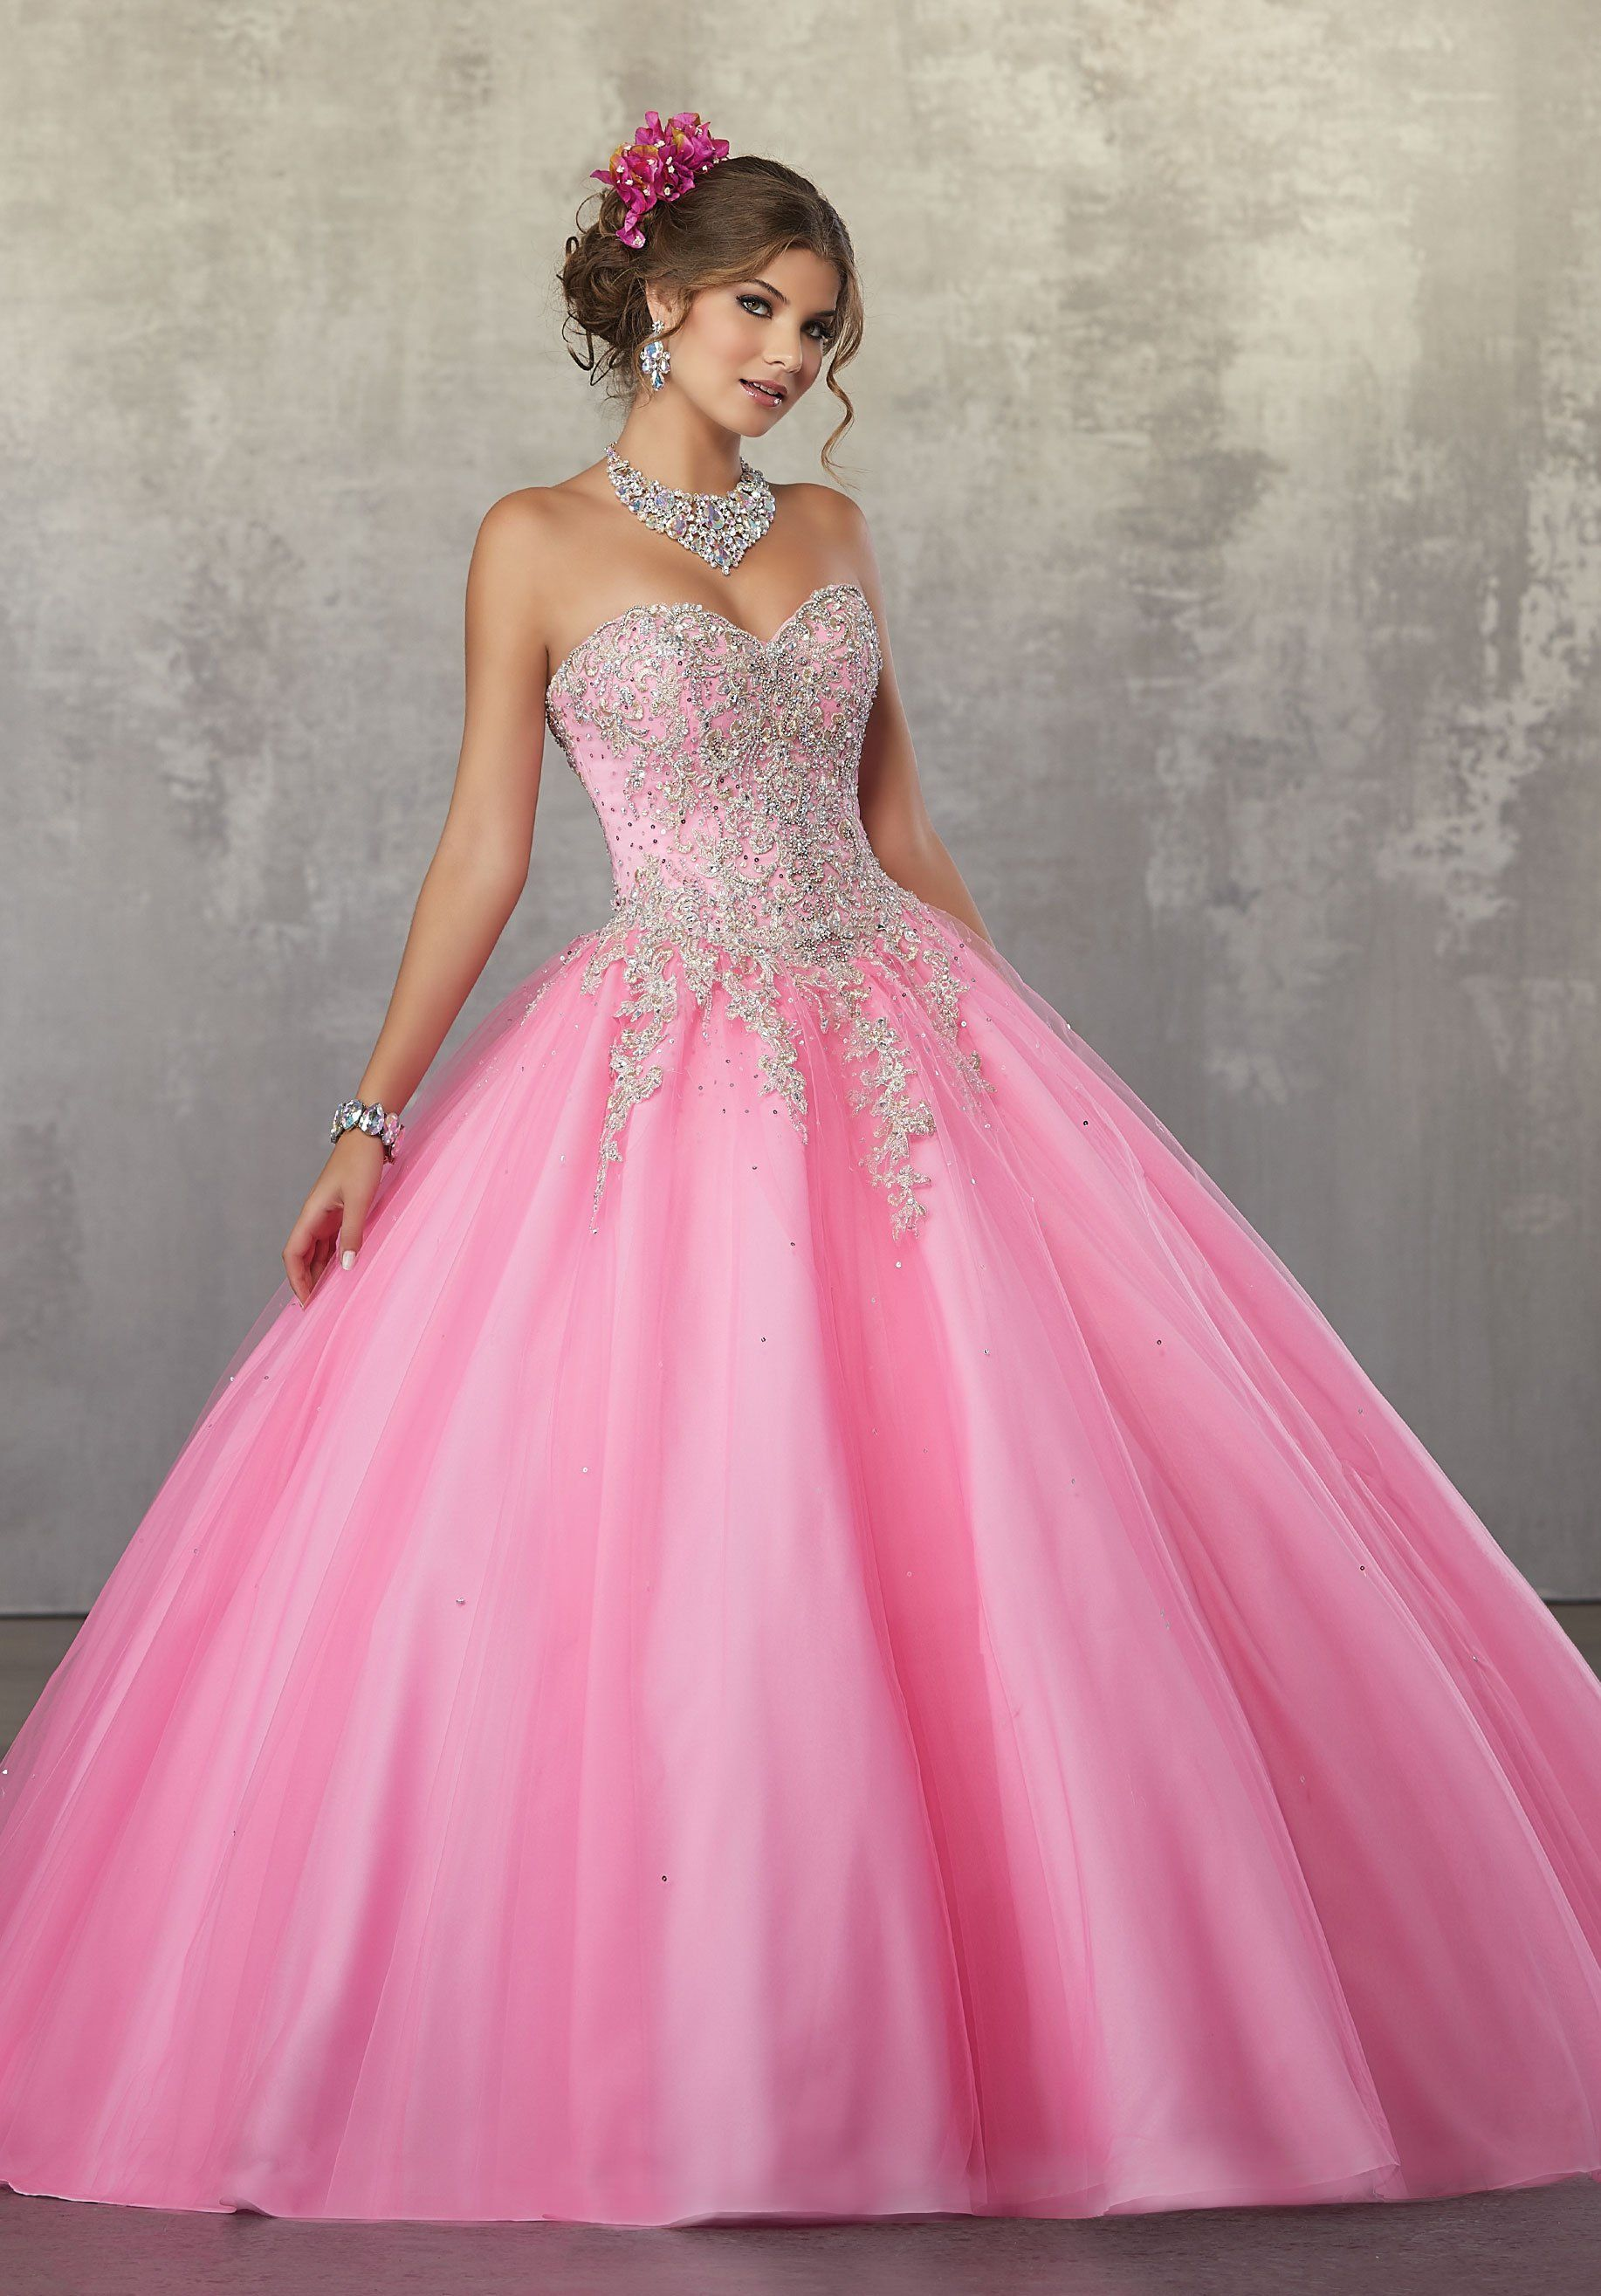 Strapless A-Line Quinceanera Dress by Mori Lee Valencia 60035 | 15 ...